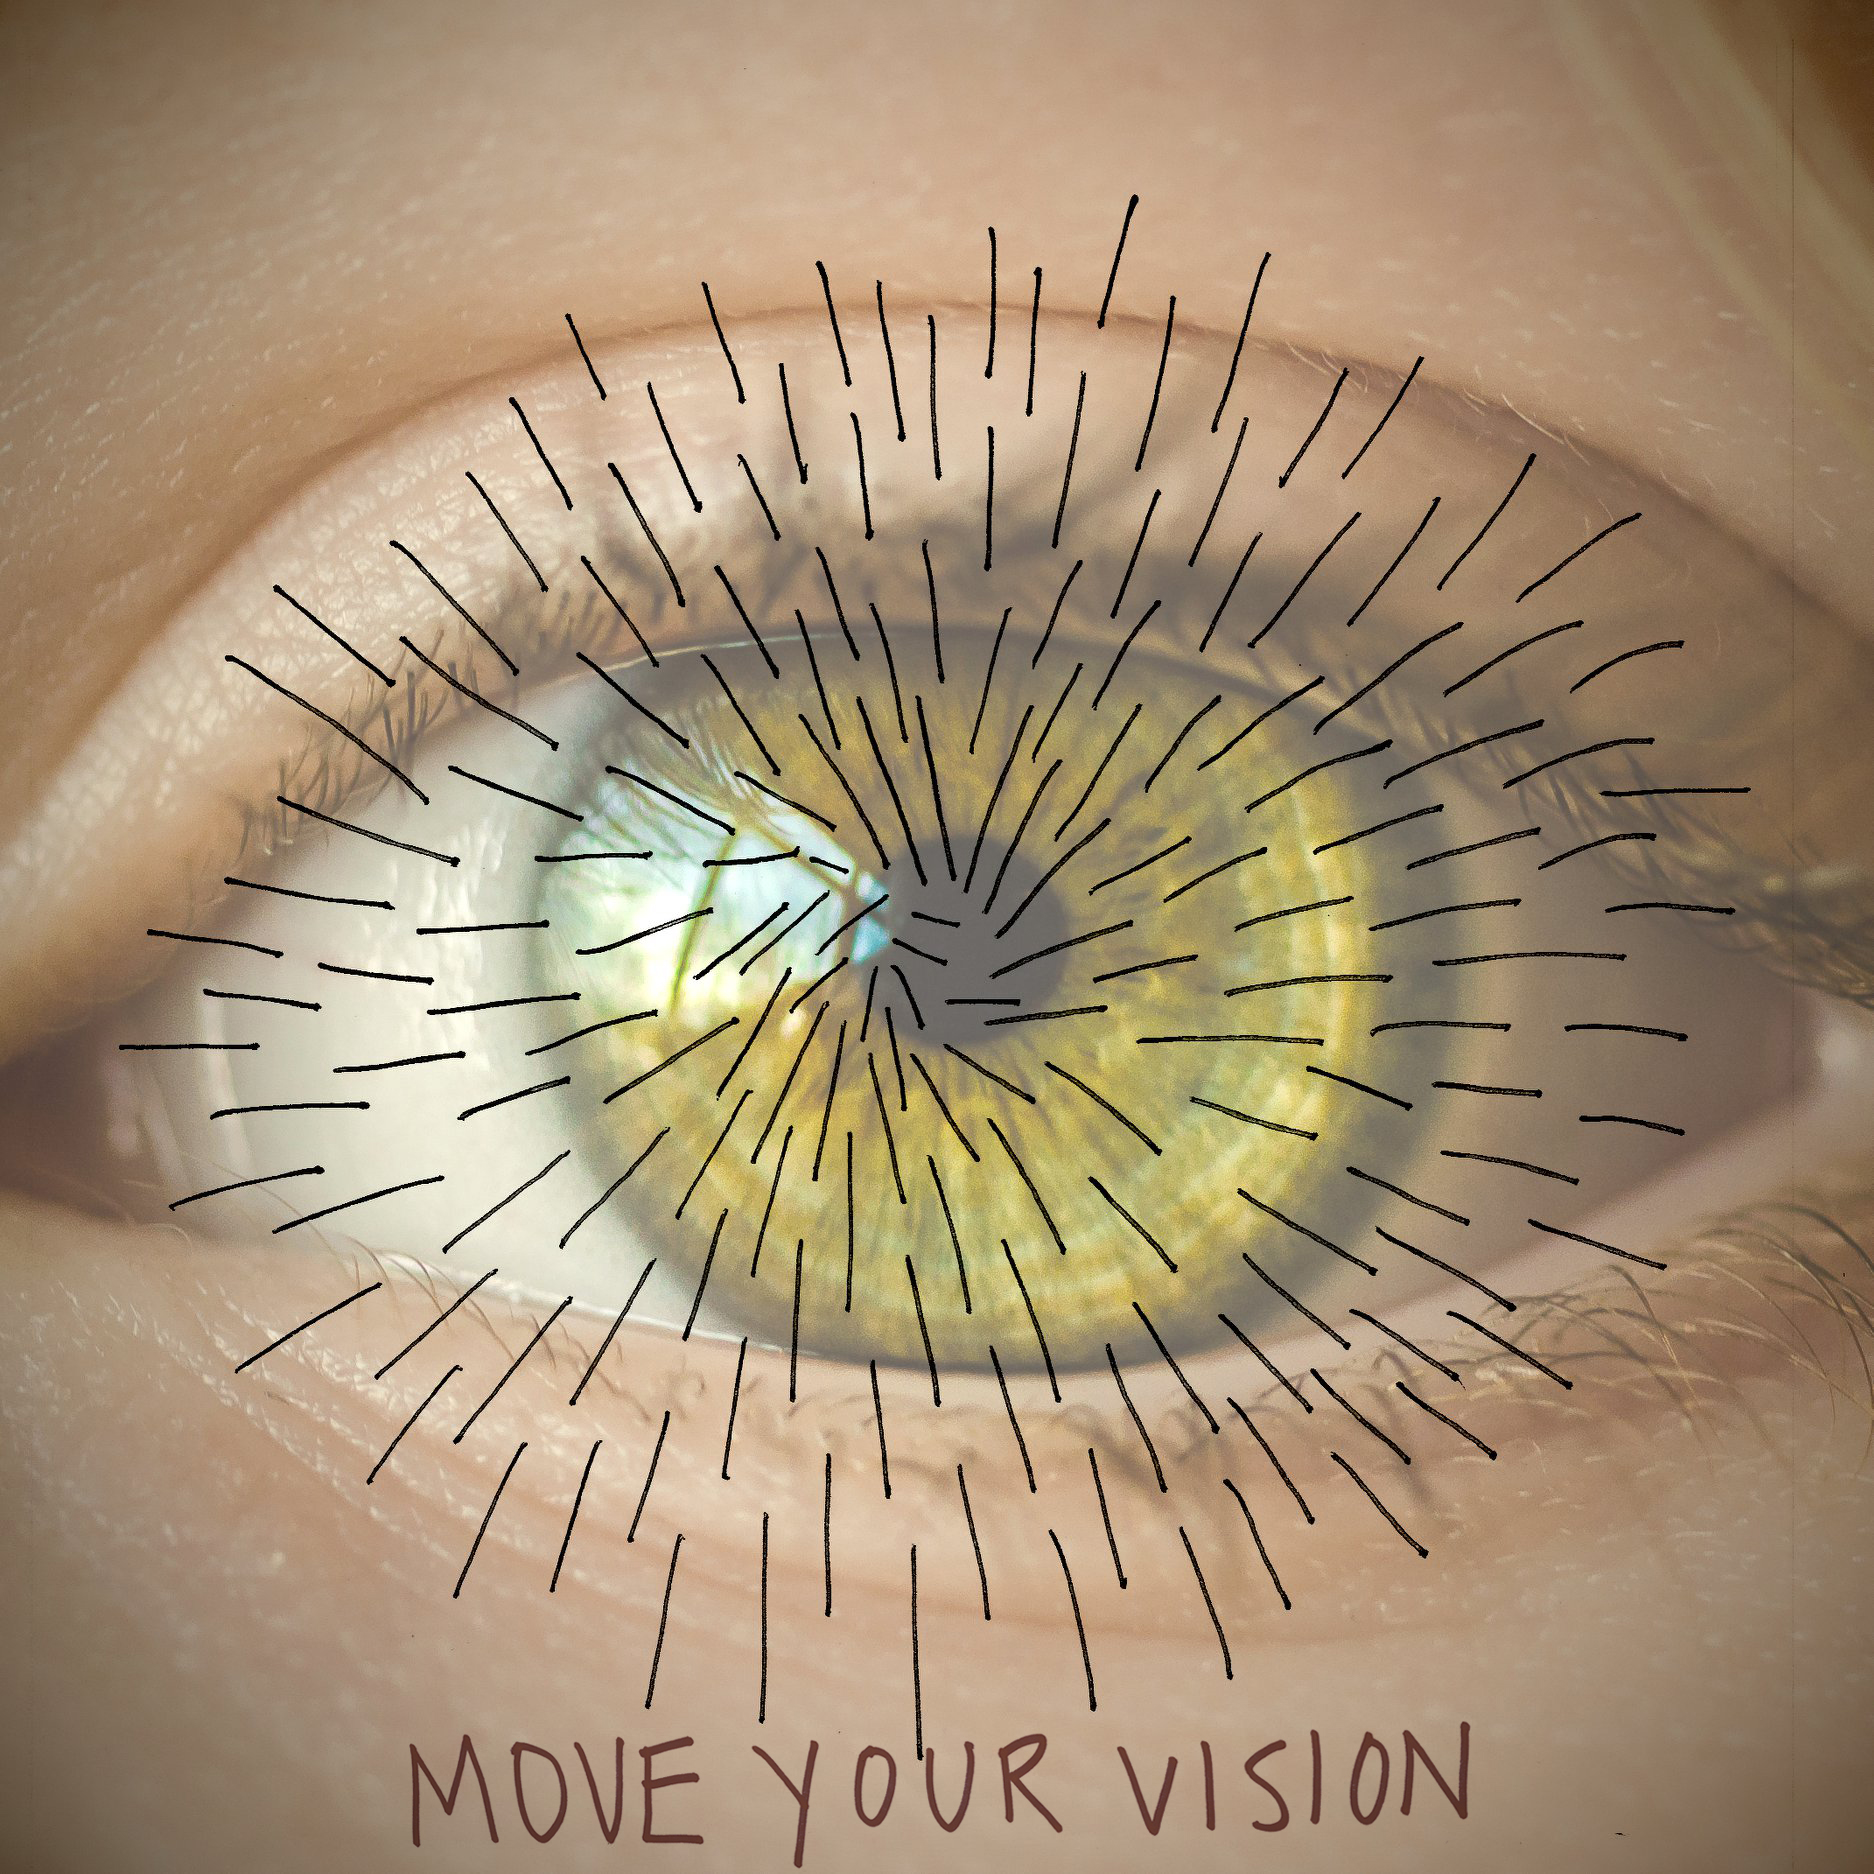 move your vision eye.jpg